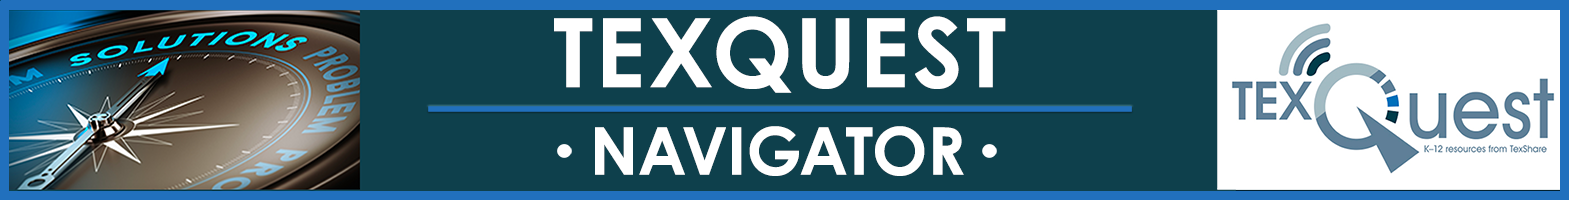 TexQuest Navigator Banner, compass and TexQuest logo